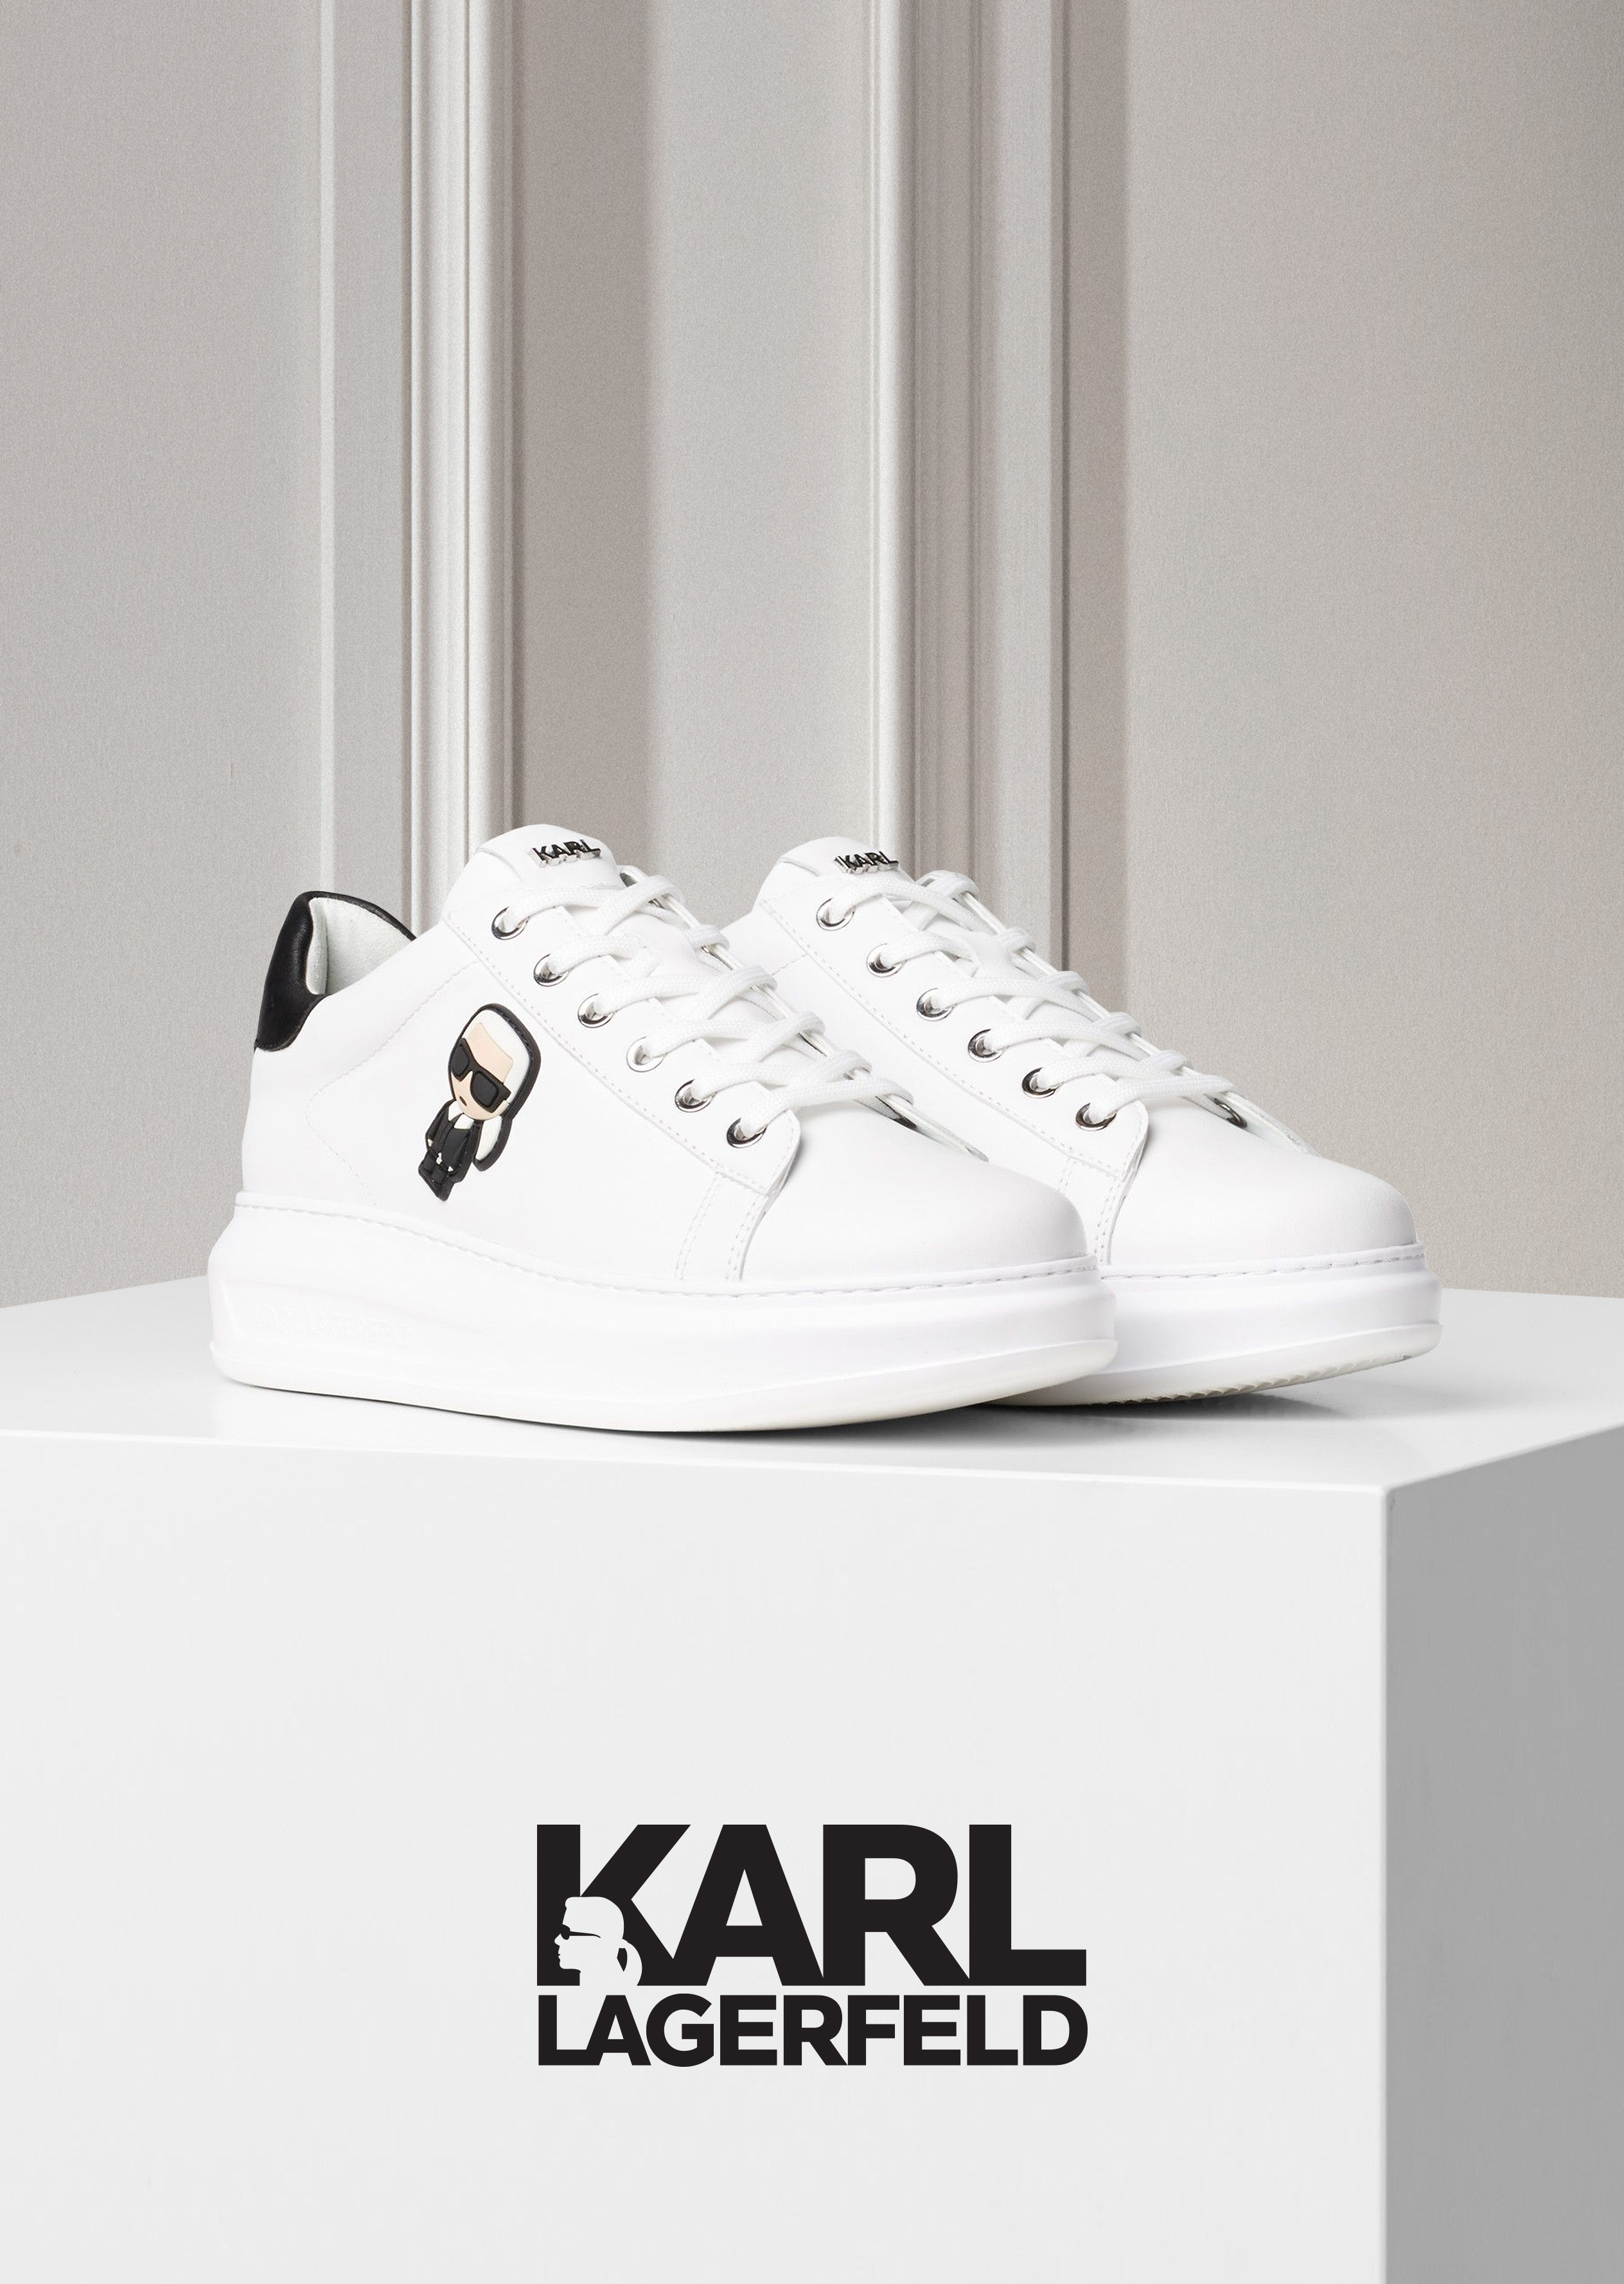 Karl_Lagerfeld_Office_Shoes_Srbija_aw20_I_A